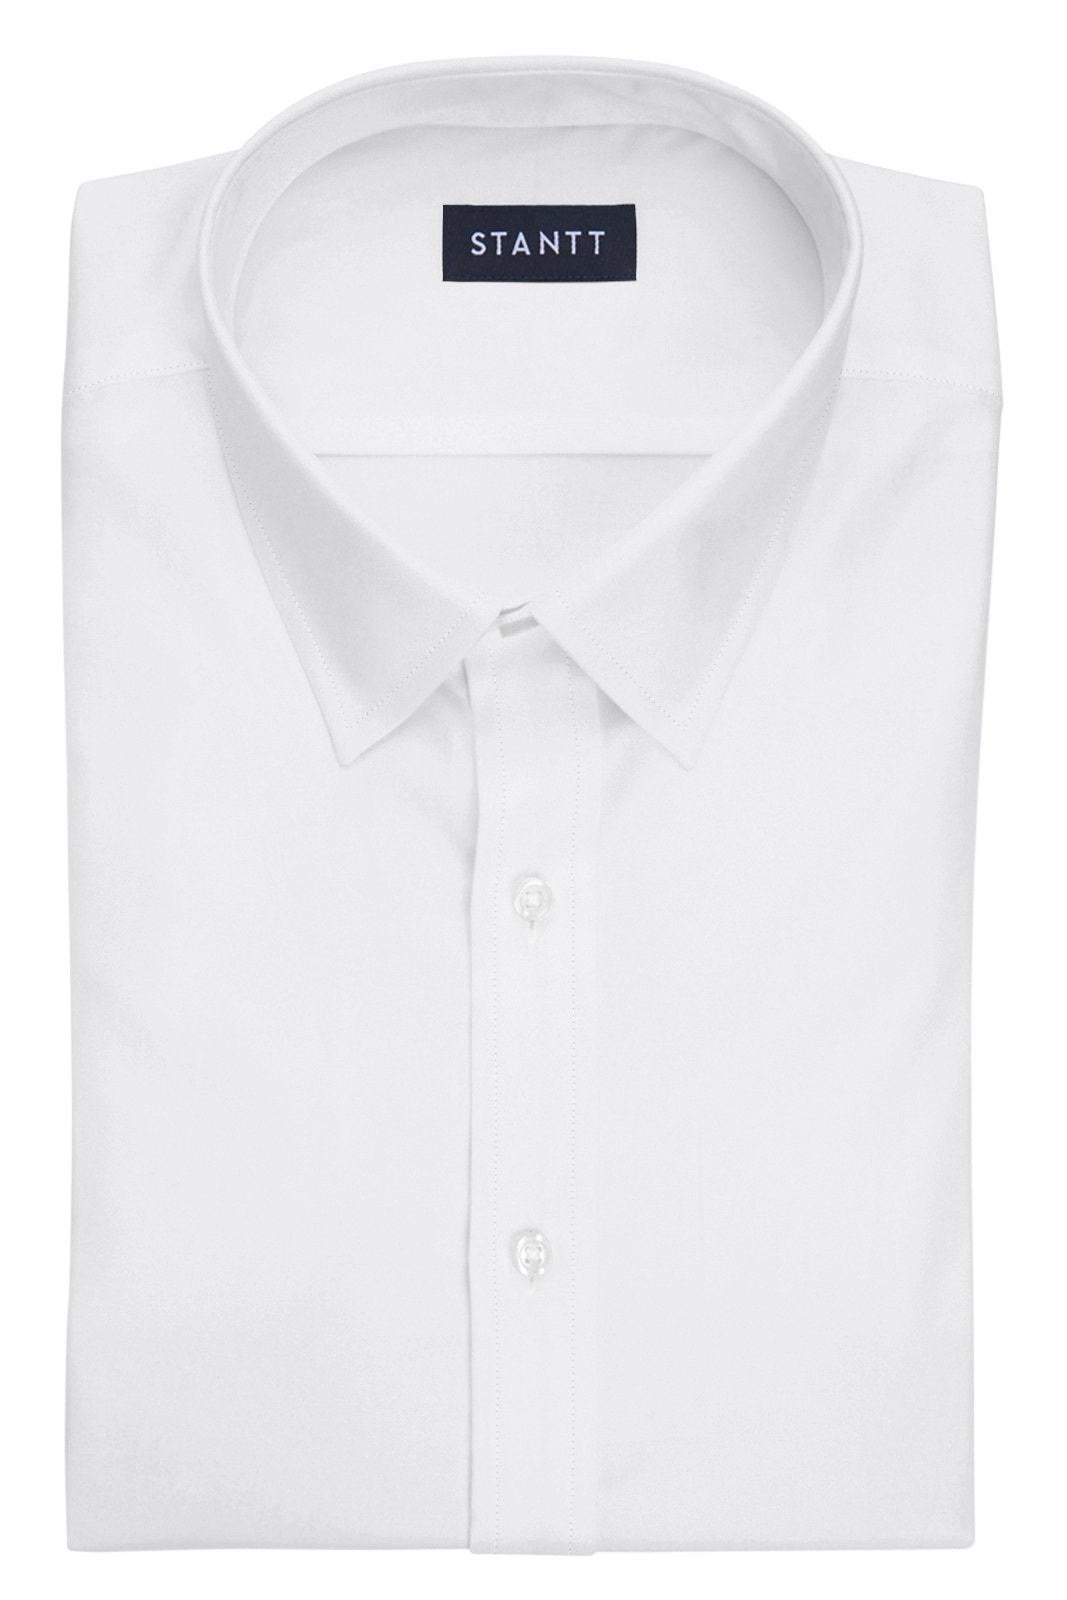 White Pinpoint Oxford: Semi-Spread Collar, French Cuff